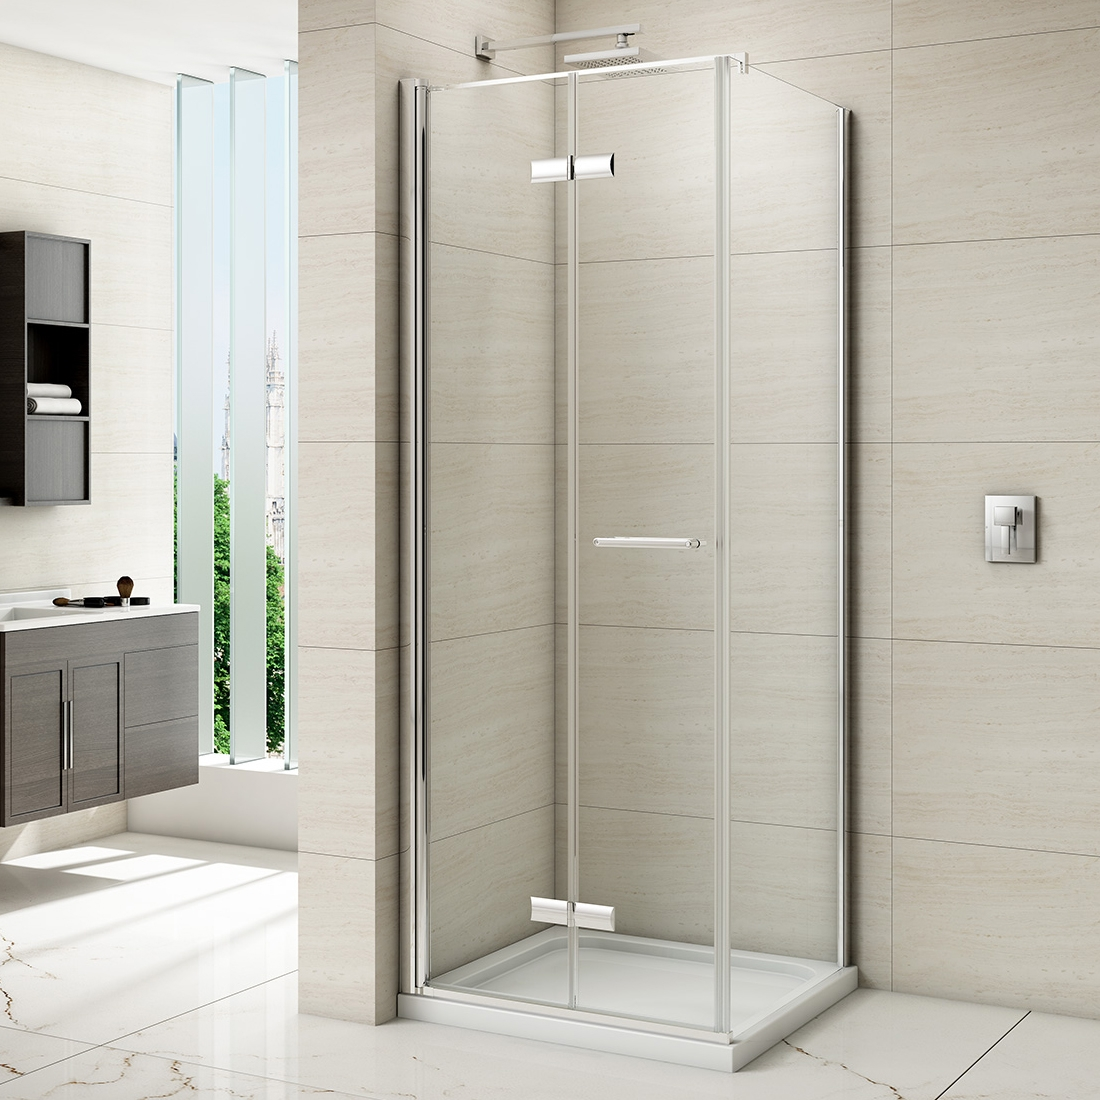 Permalink to Frameless Folding Glass Shower Doors